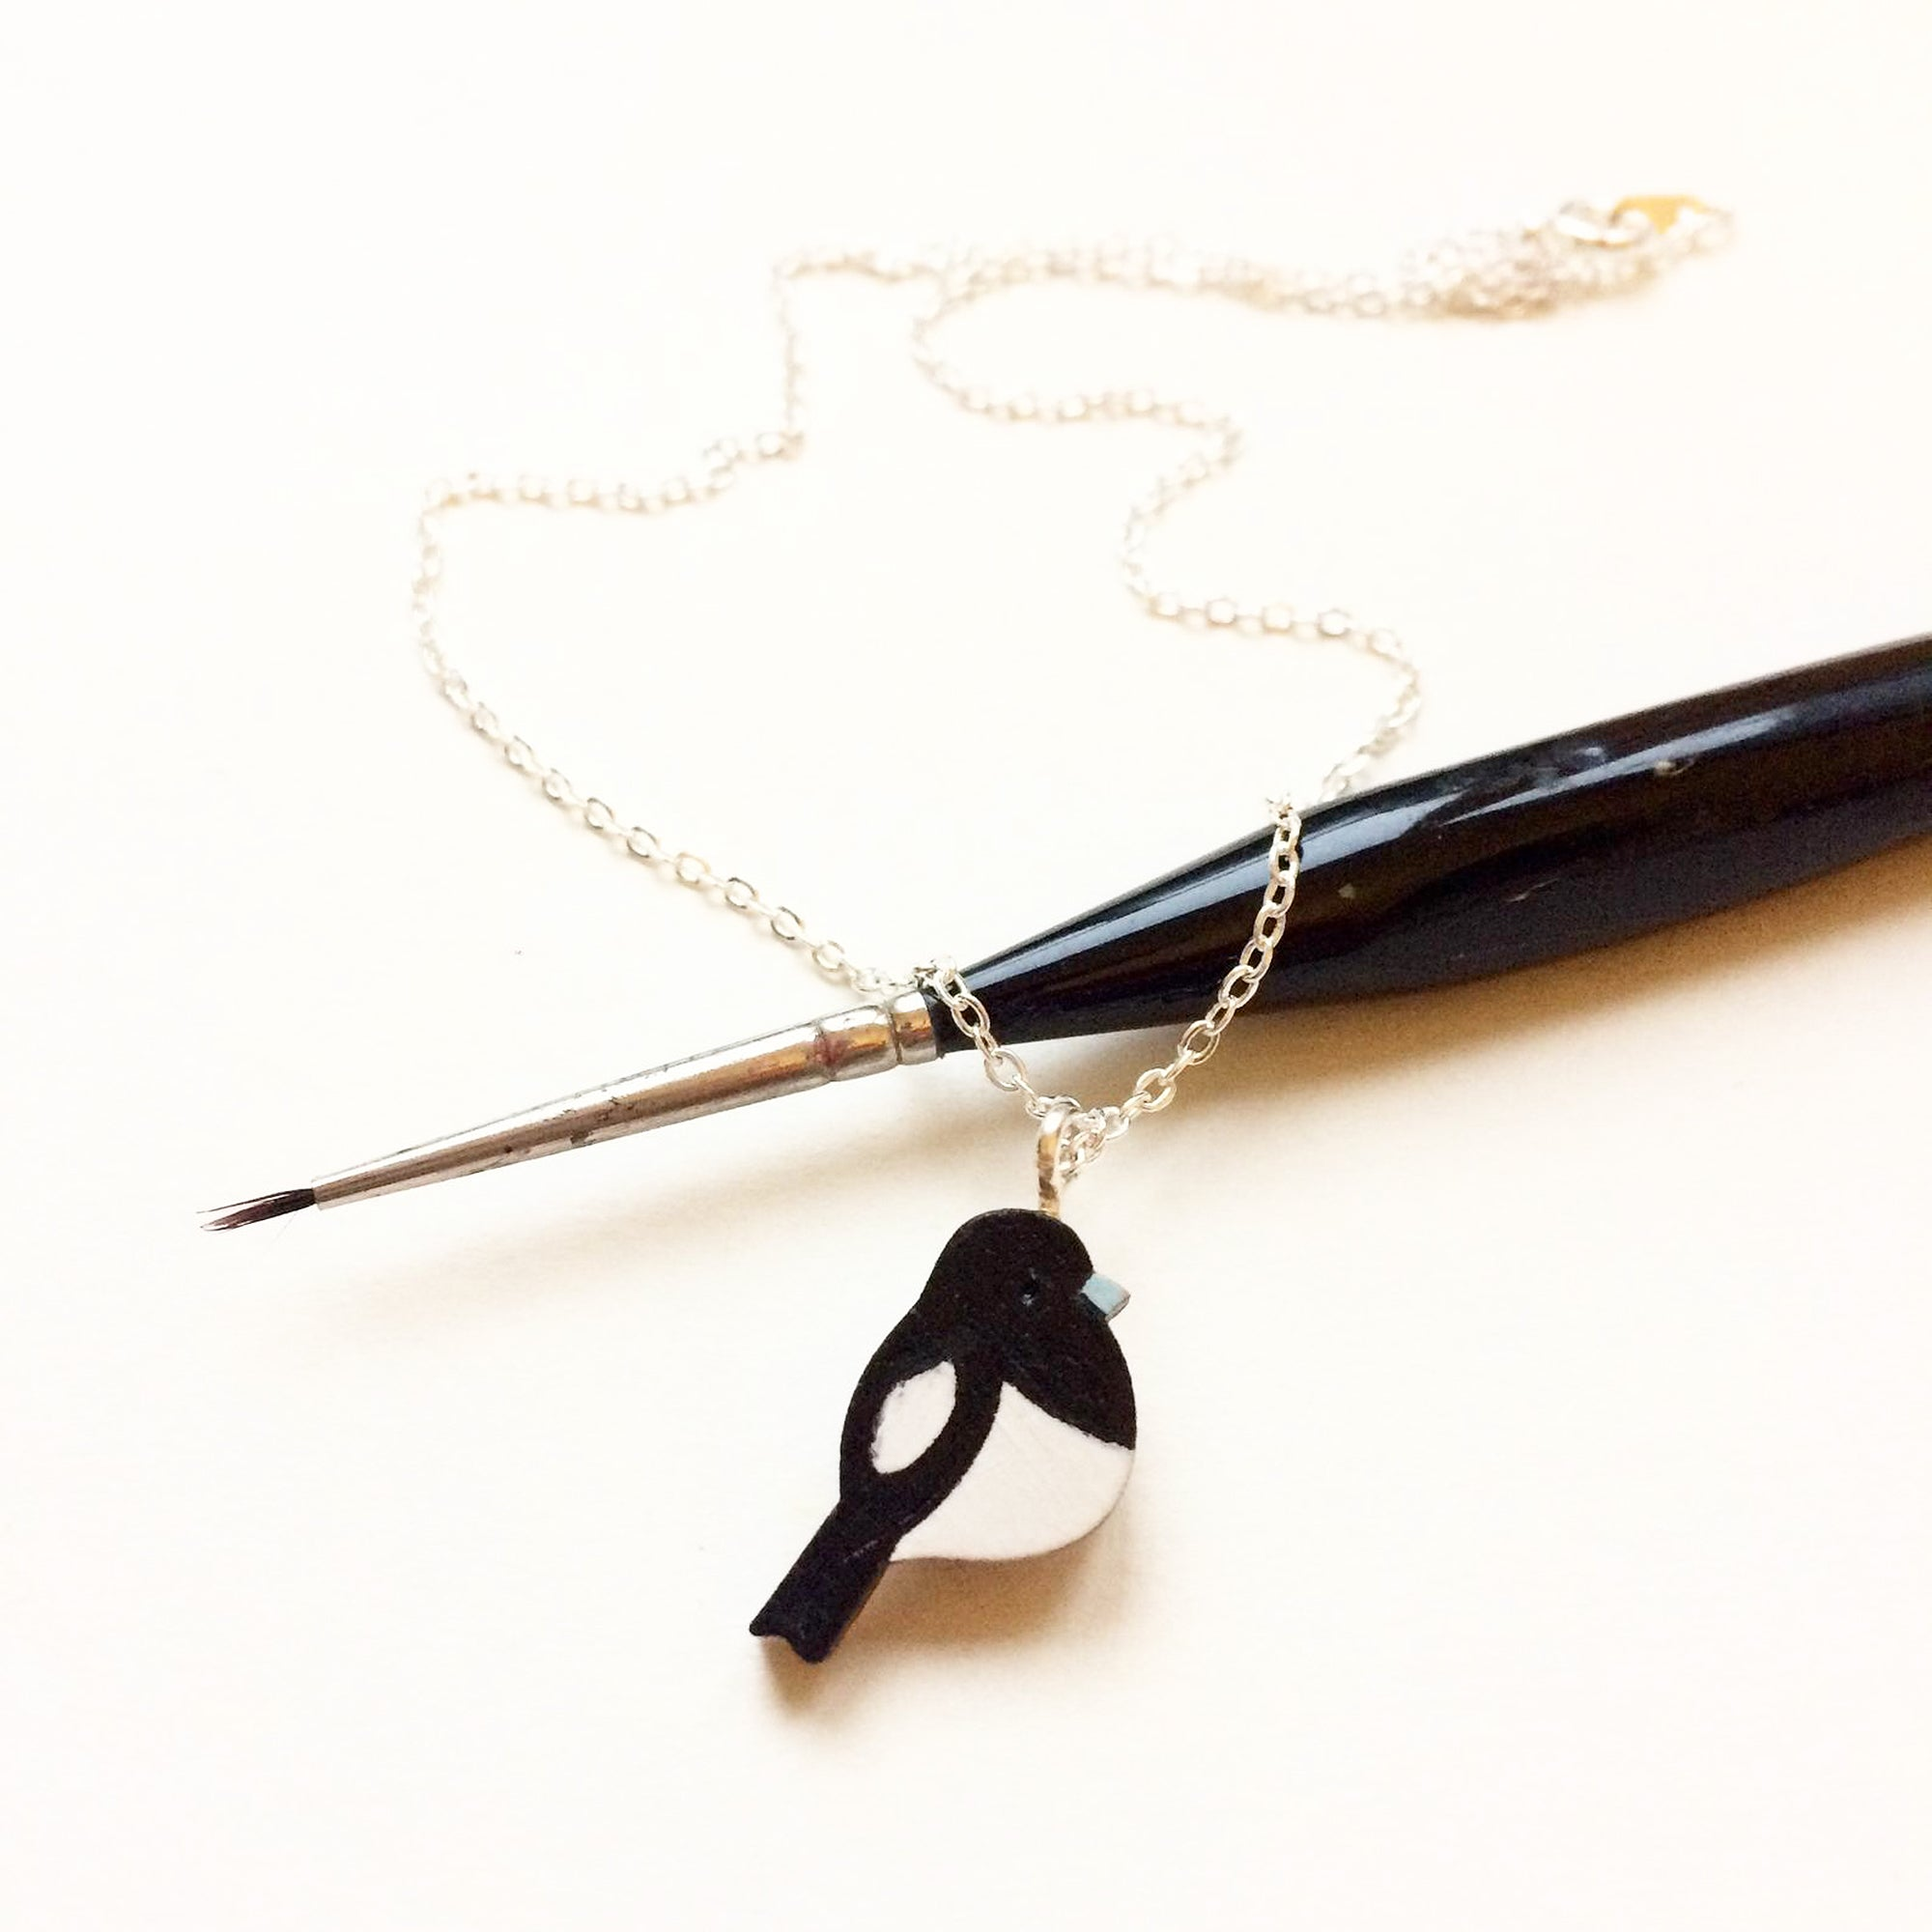 Magpie necklace